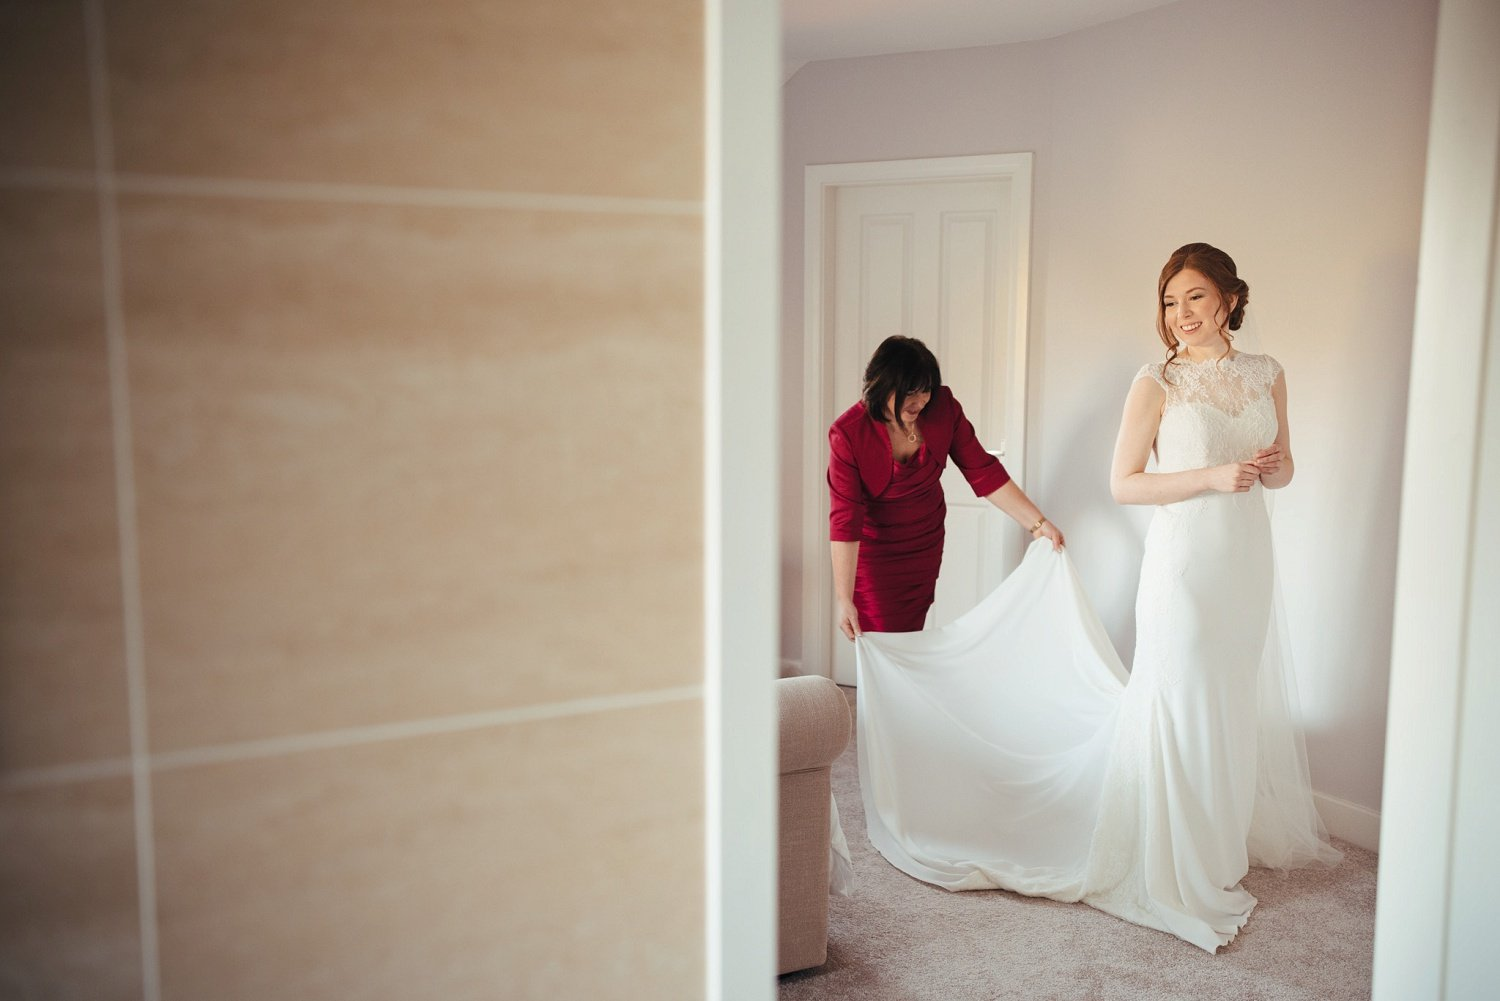 Mother of the bride arranges wedding dress train for a dress from Hagley Bridal Studio